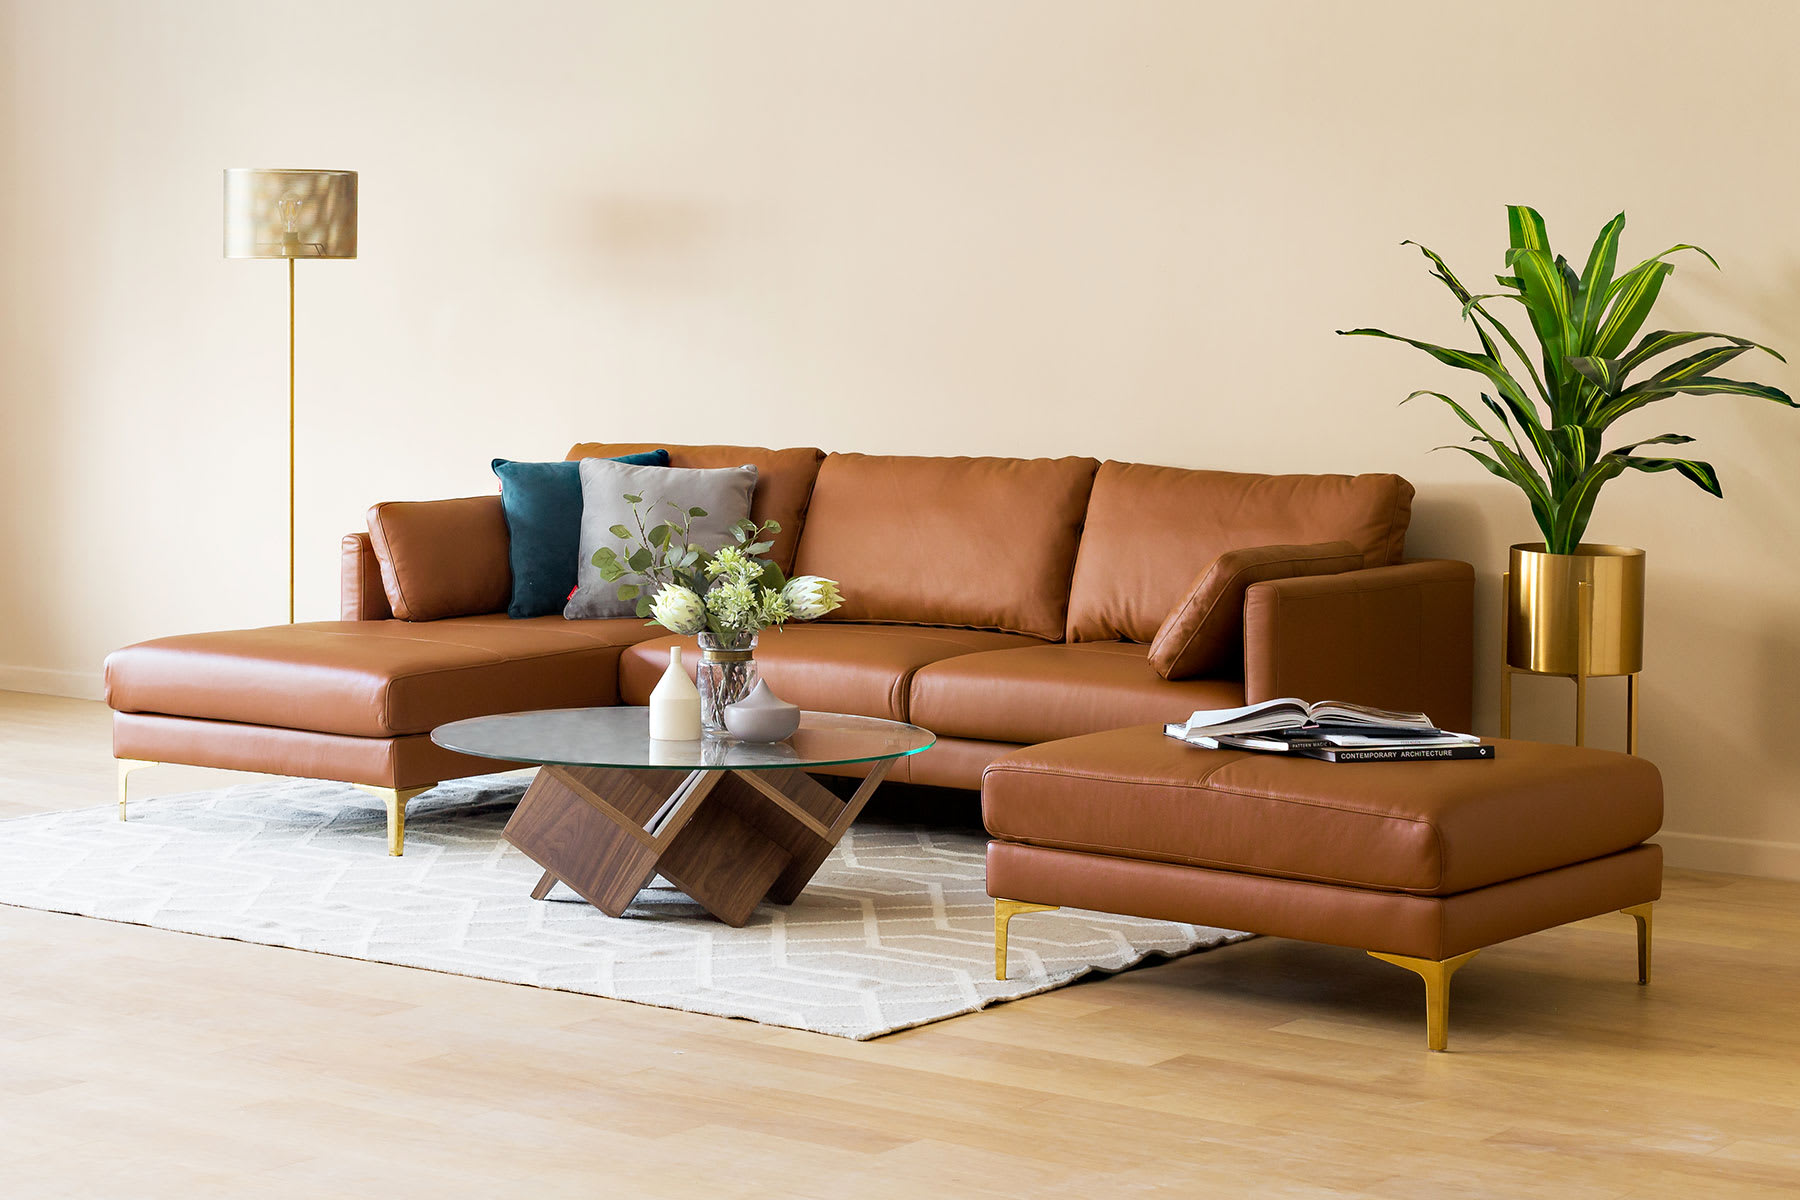 brown sectional leather sofa in living room with ottoman, rug and lamp